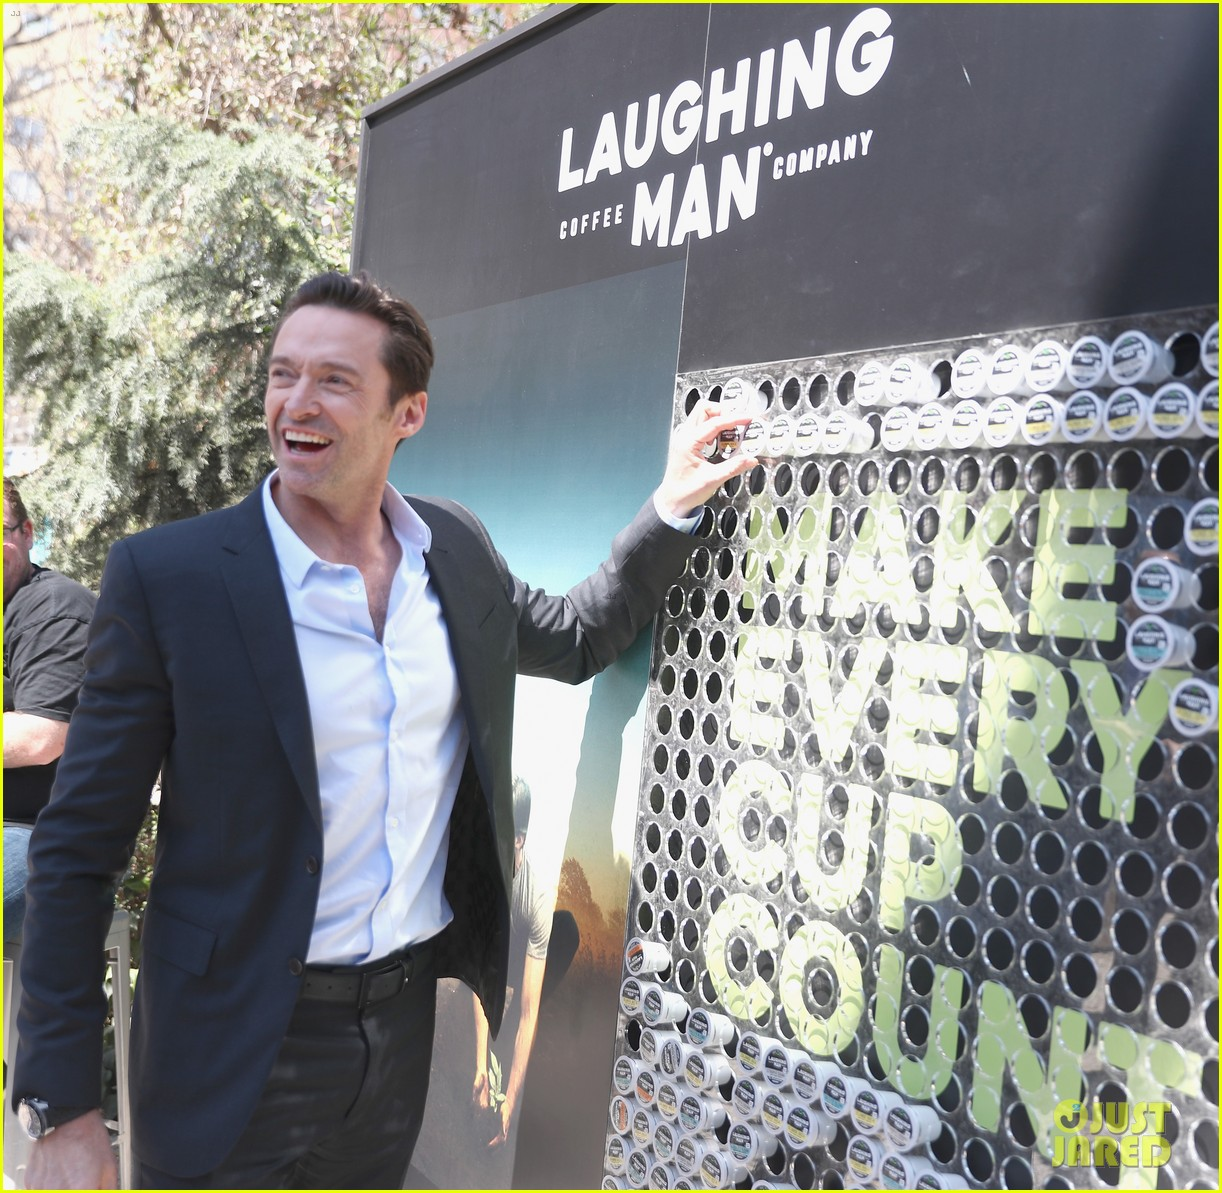 Hugh Jackman Laughing Man Coffee Want You To Make Every Cup Count